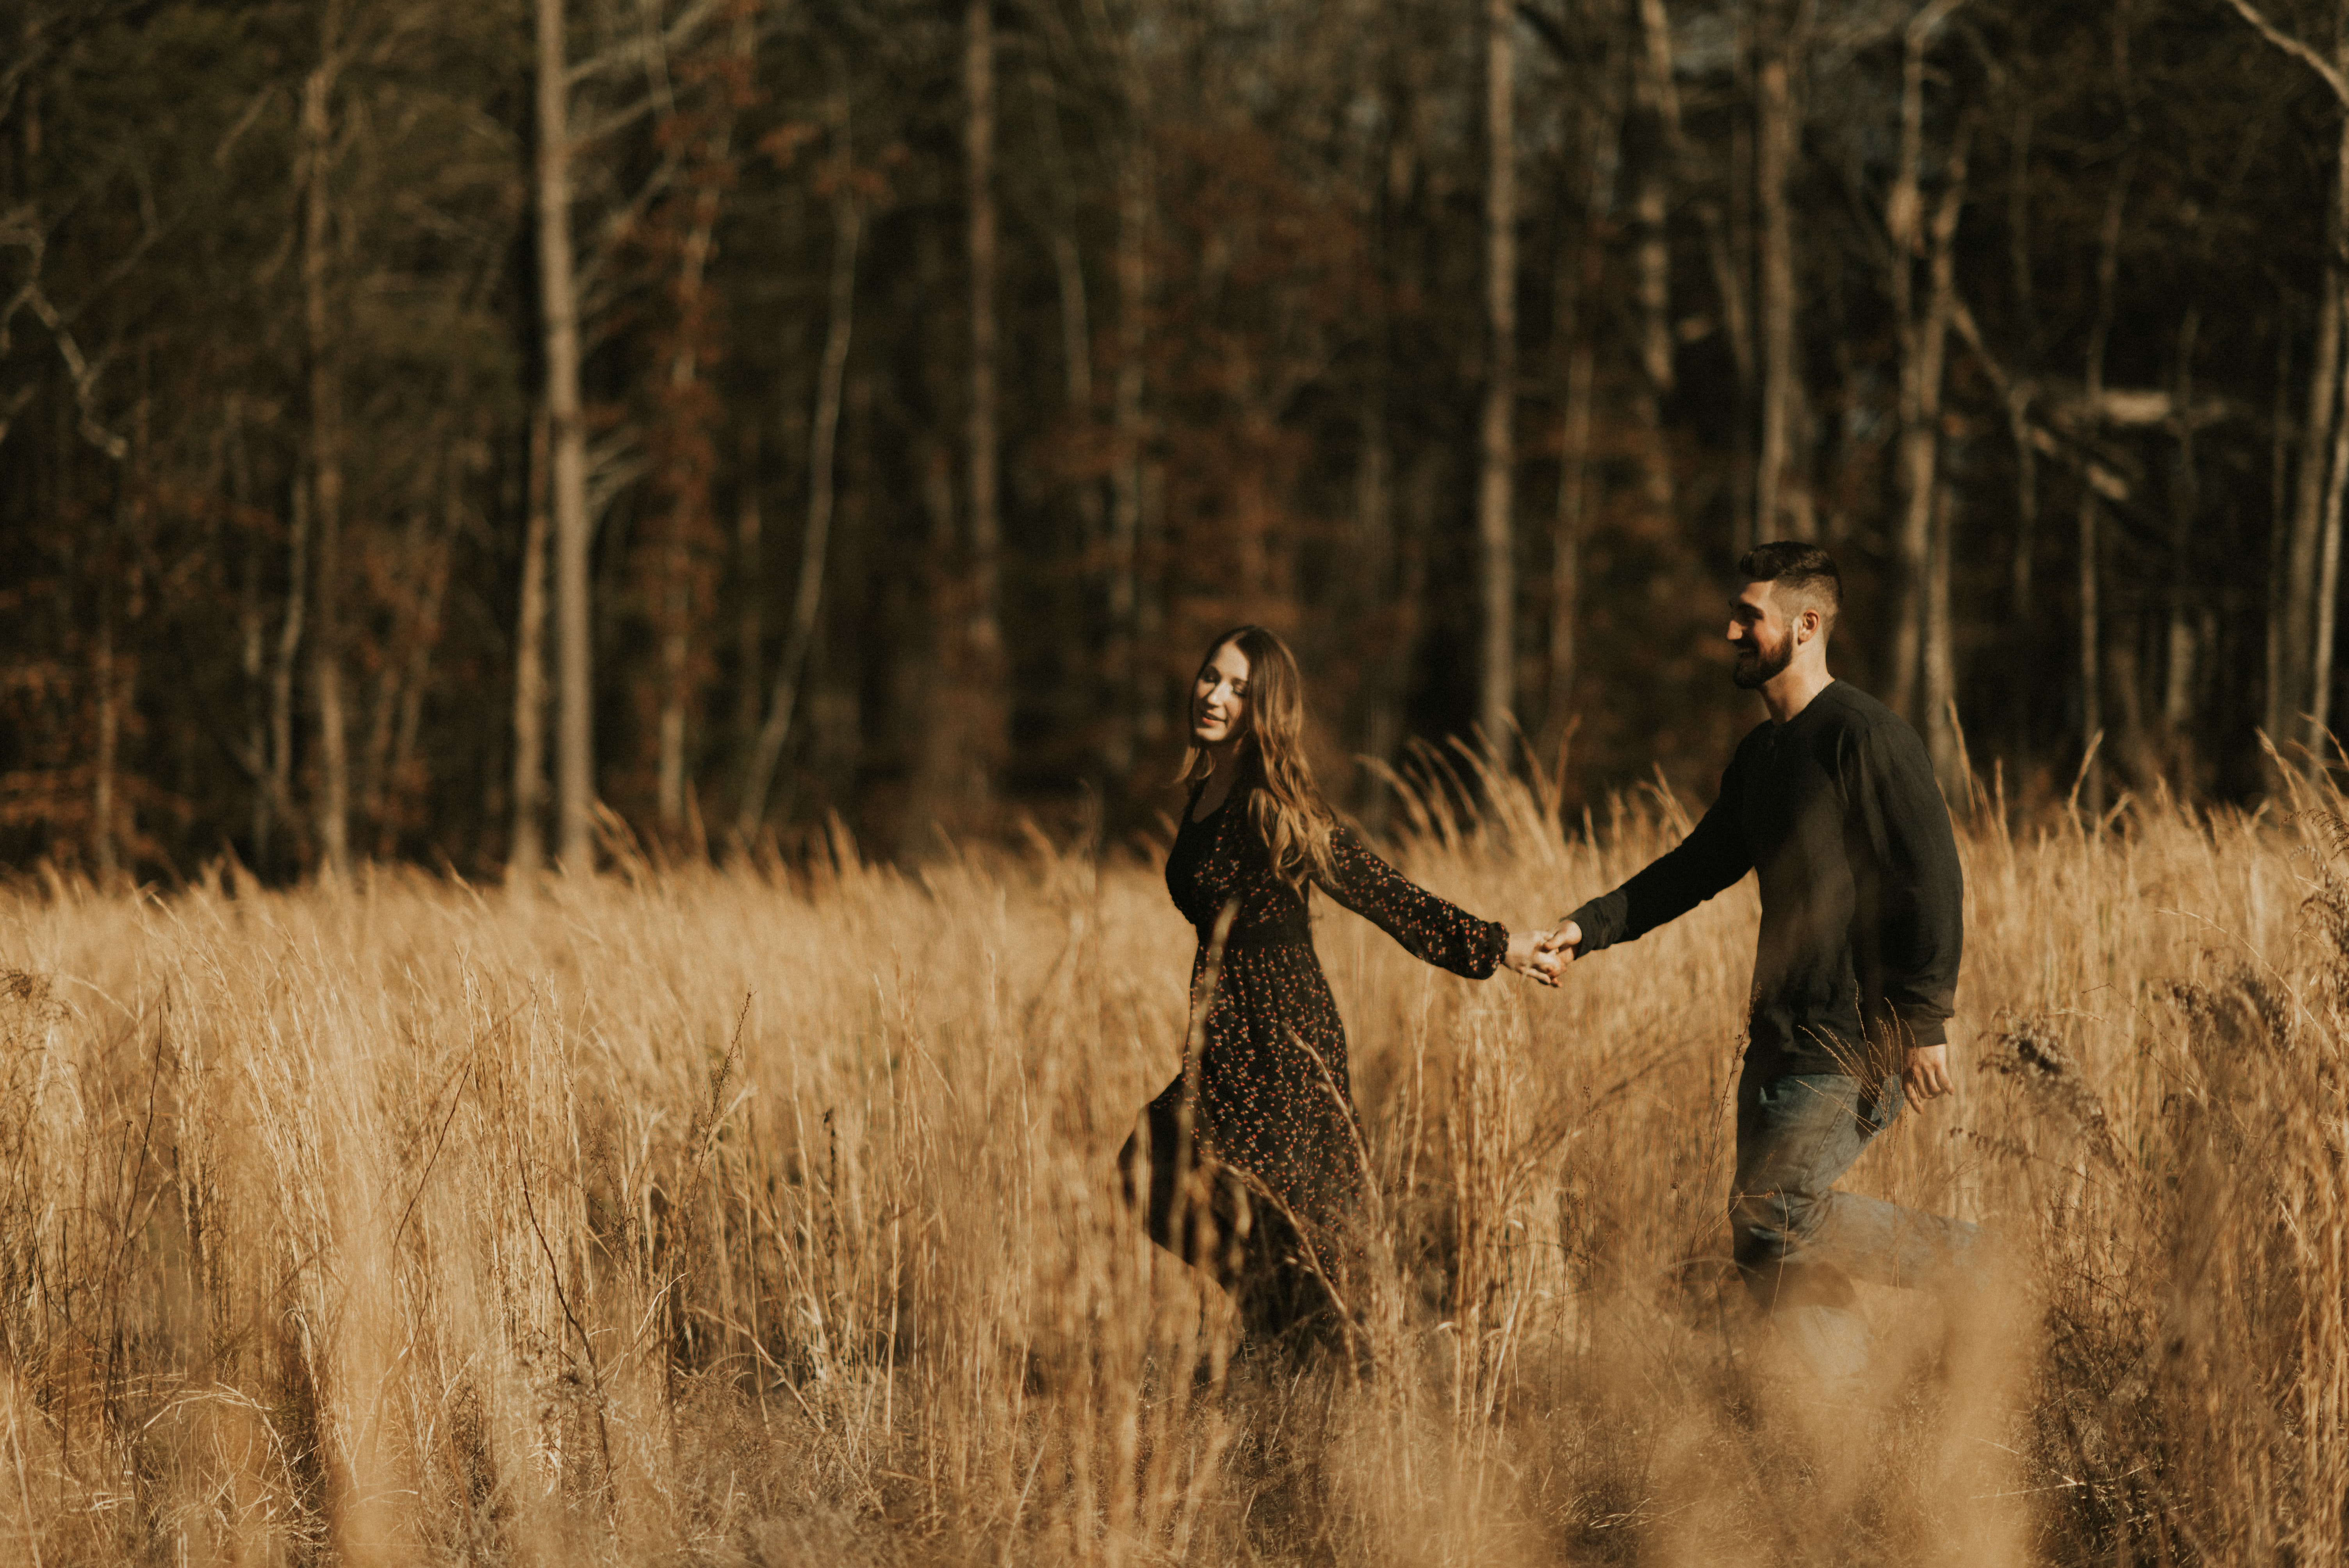 man hand in hand with woman on grass